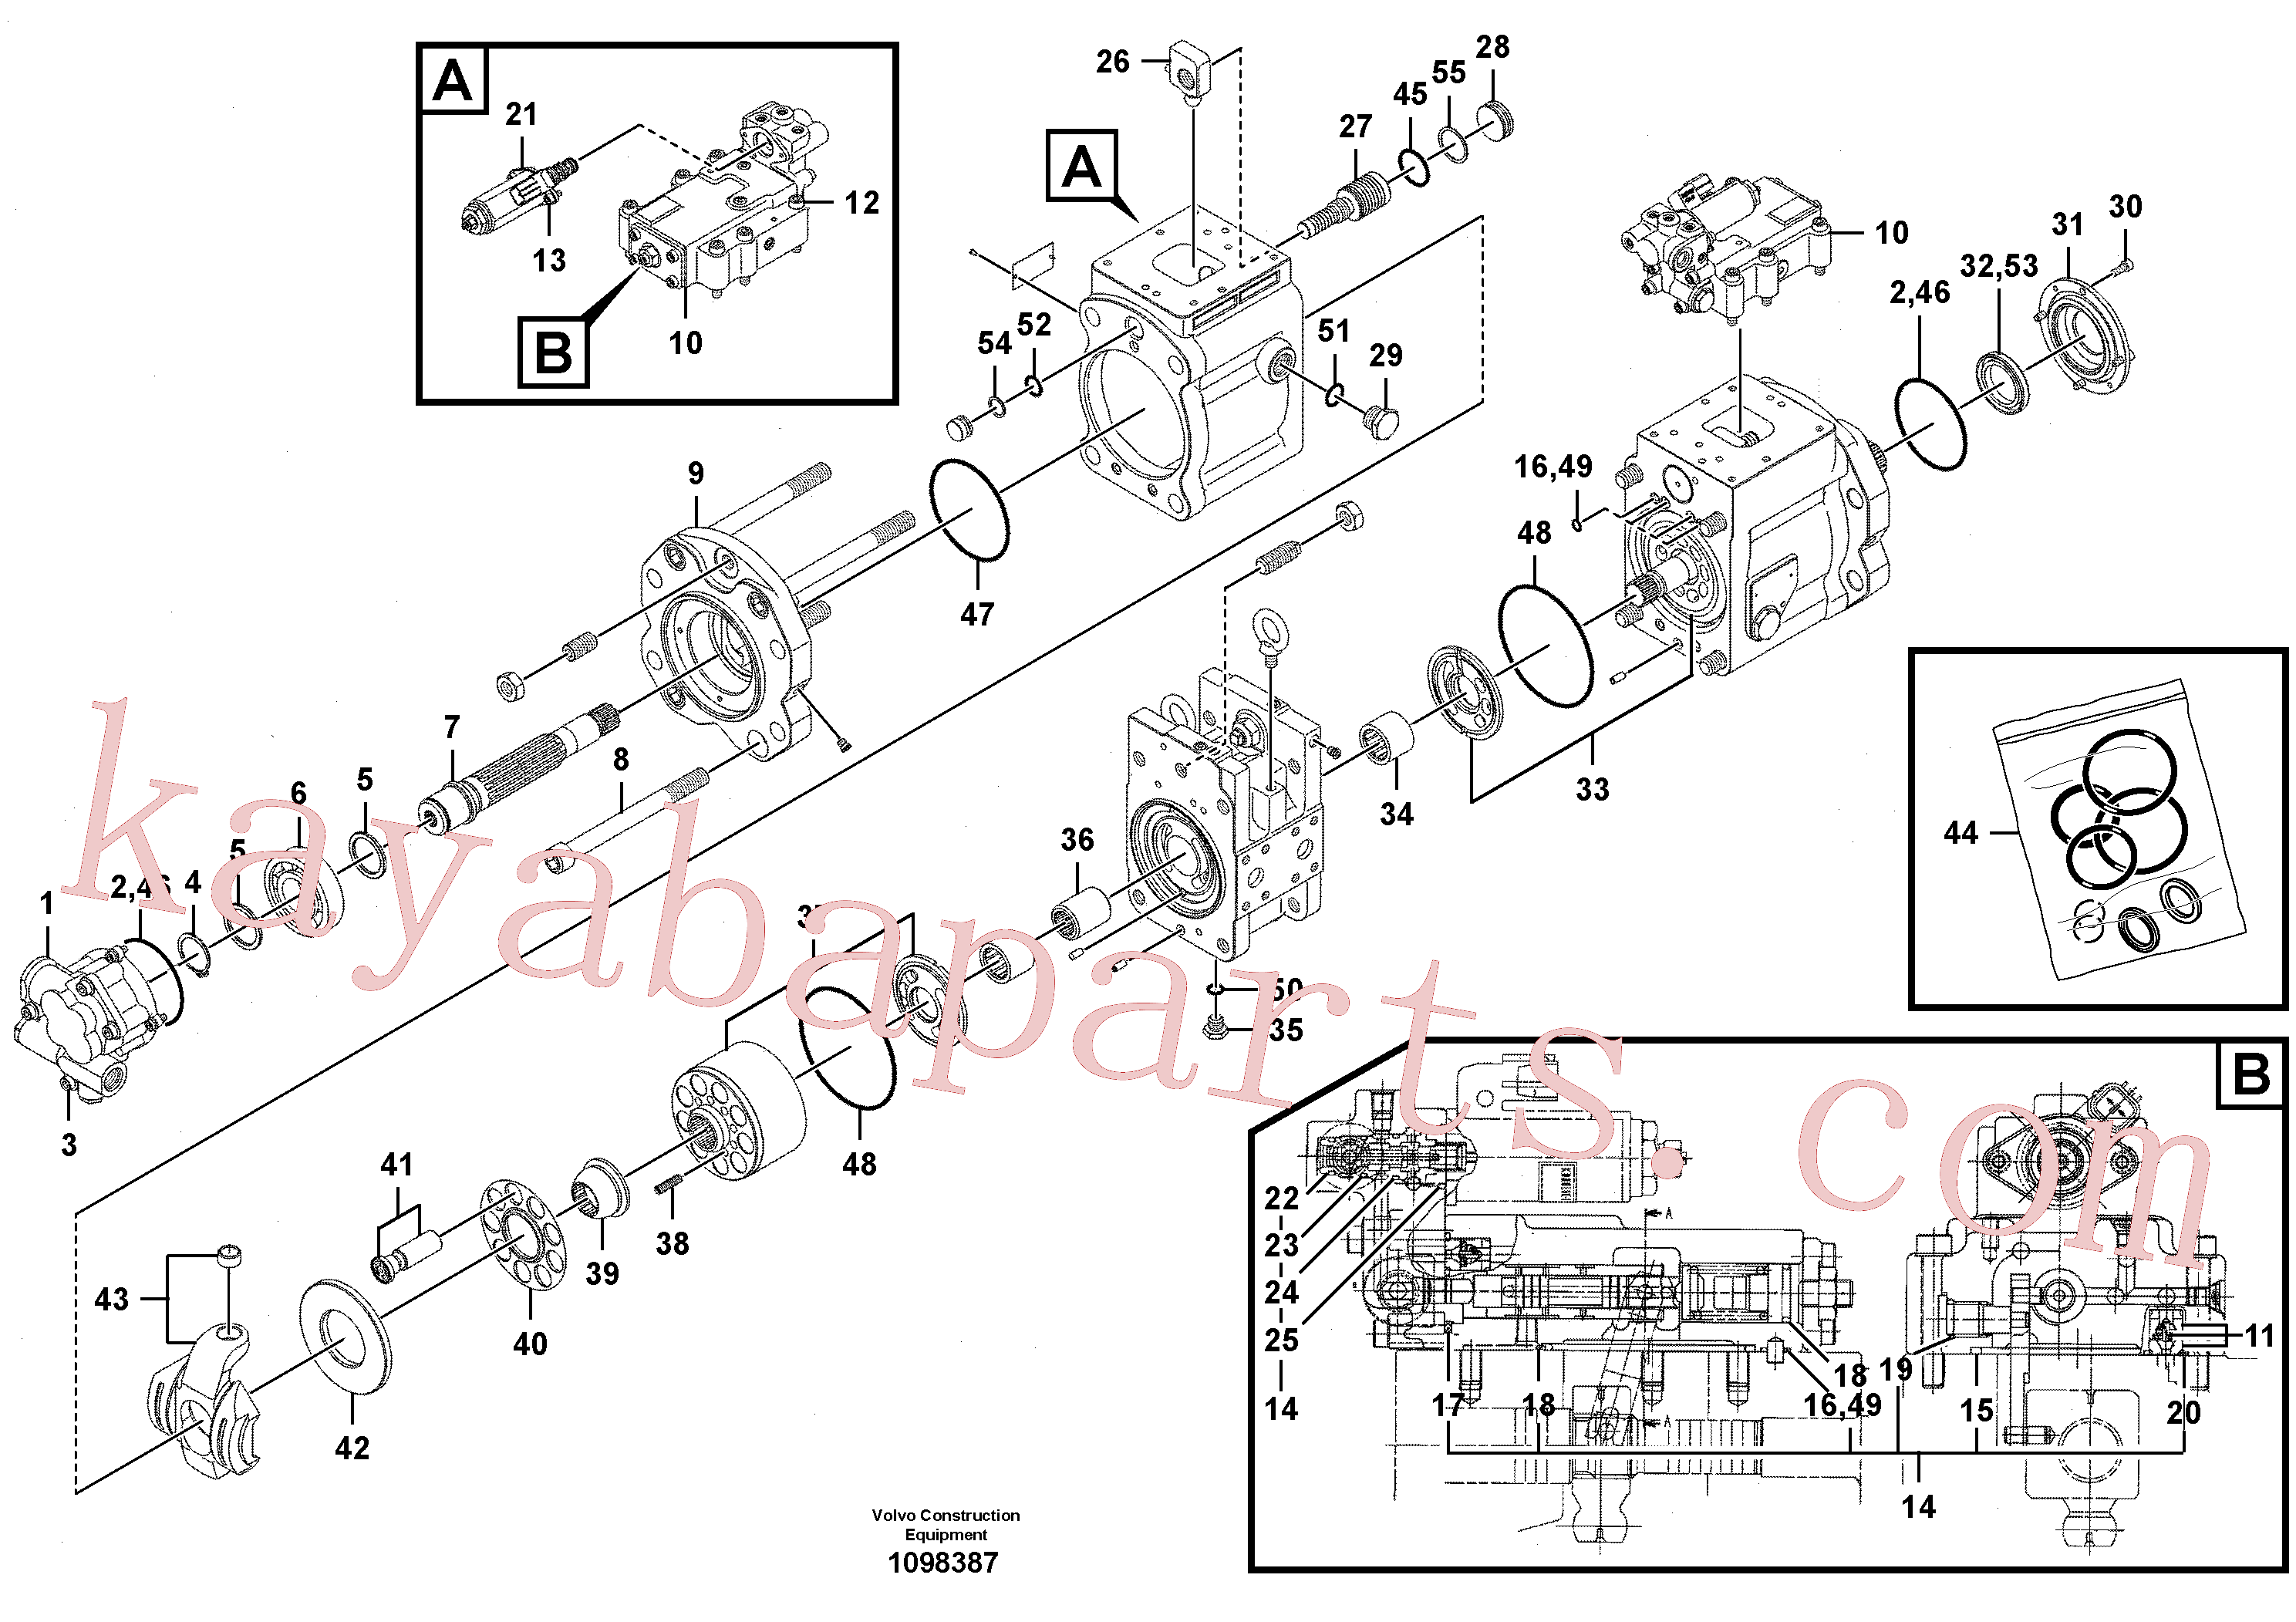 VOE14550190 for Volvo Pump installation(1098387 assembly)